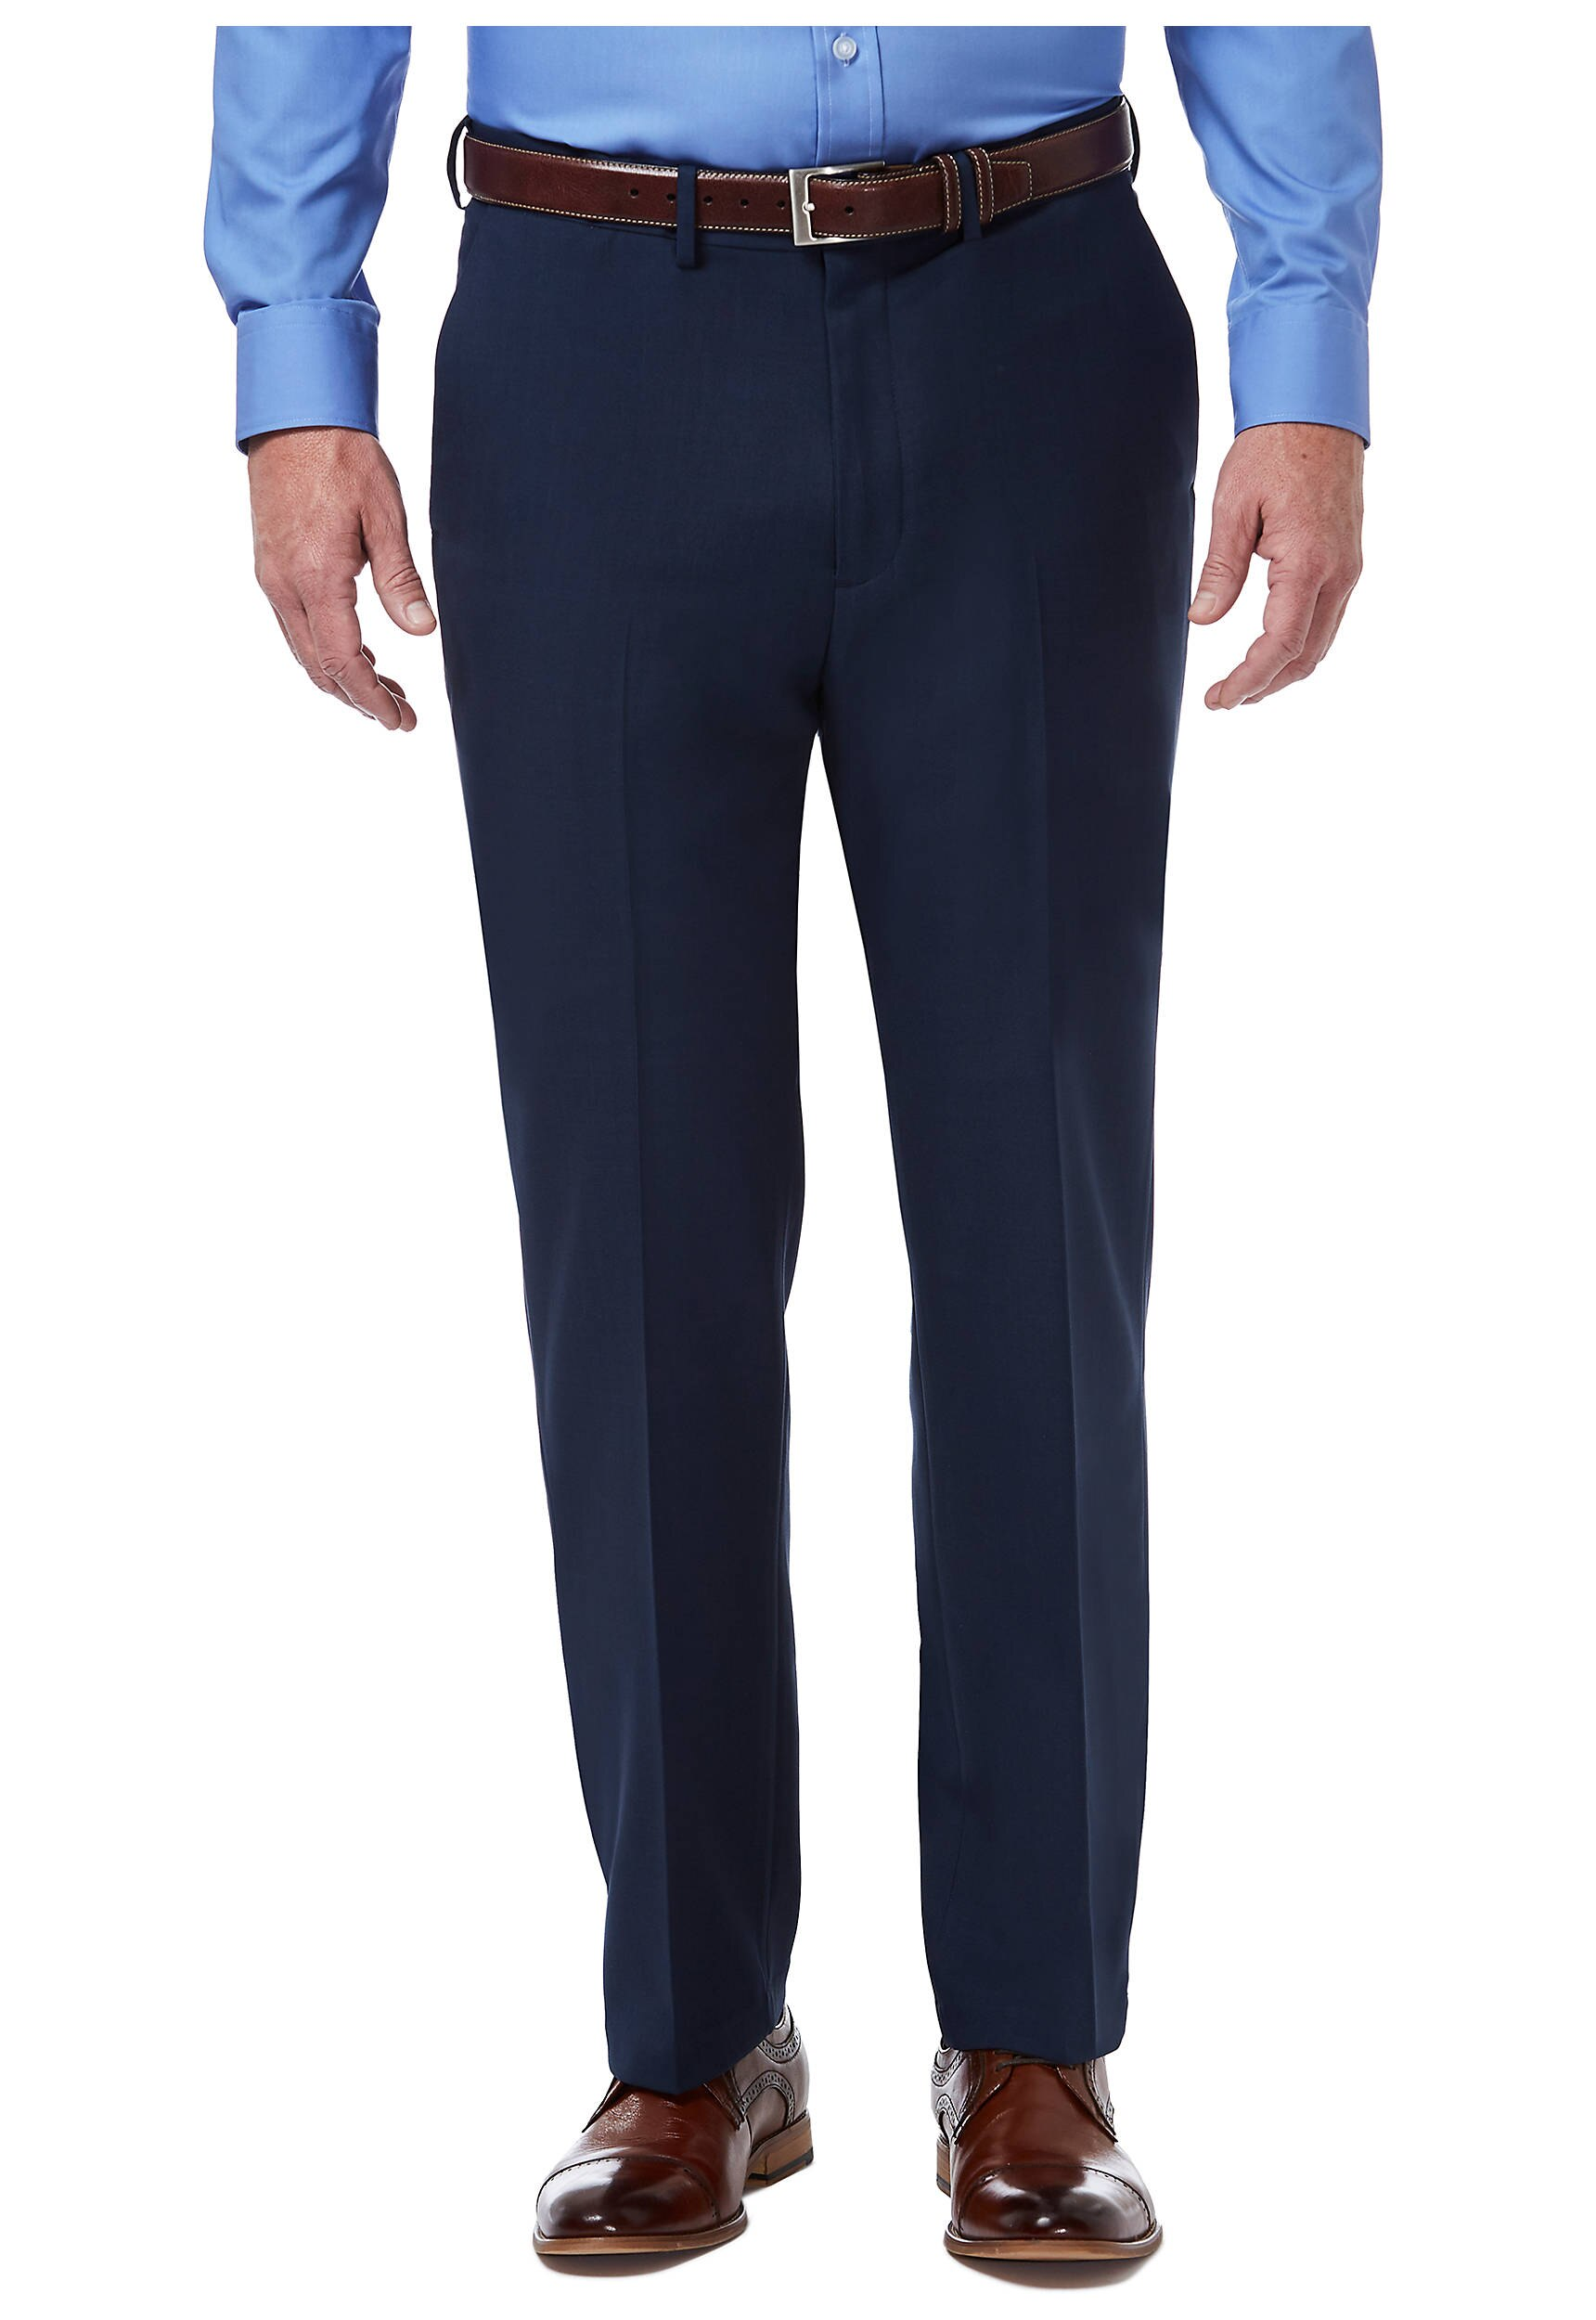 Premium Comfort Fit Flat Front Dress Pants